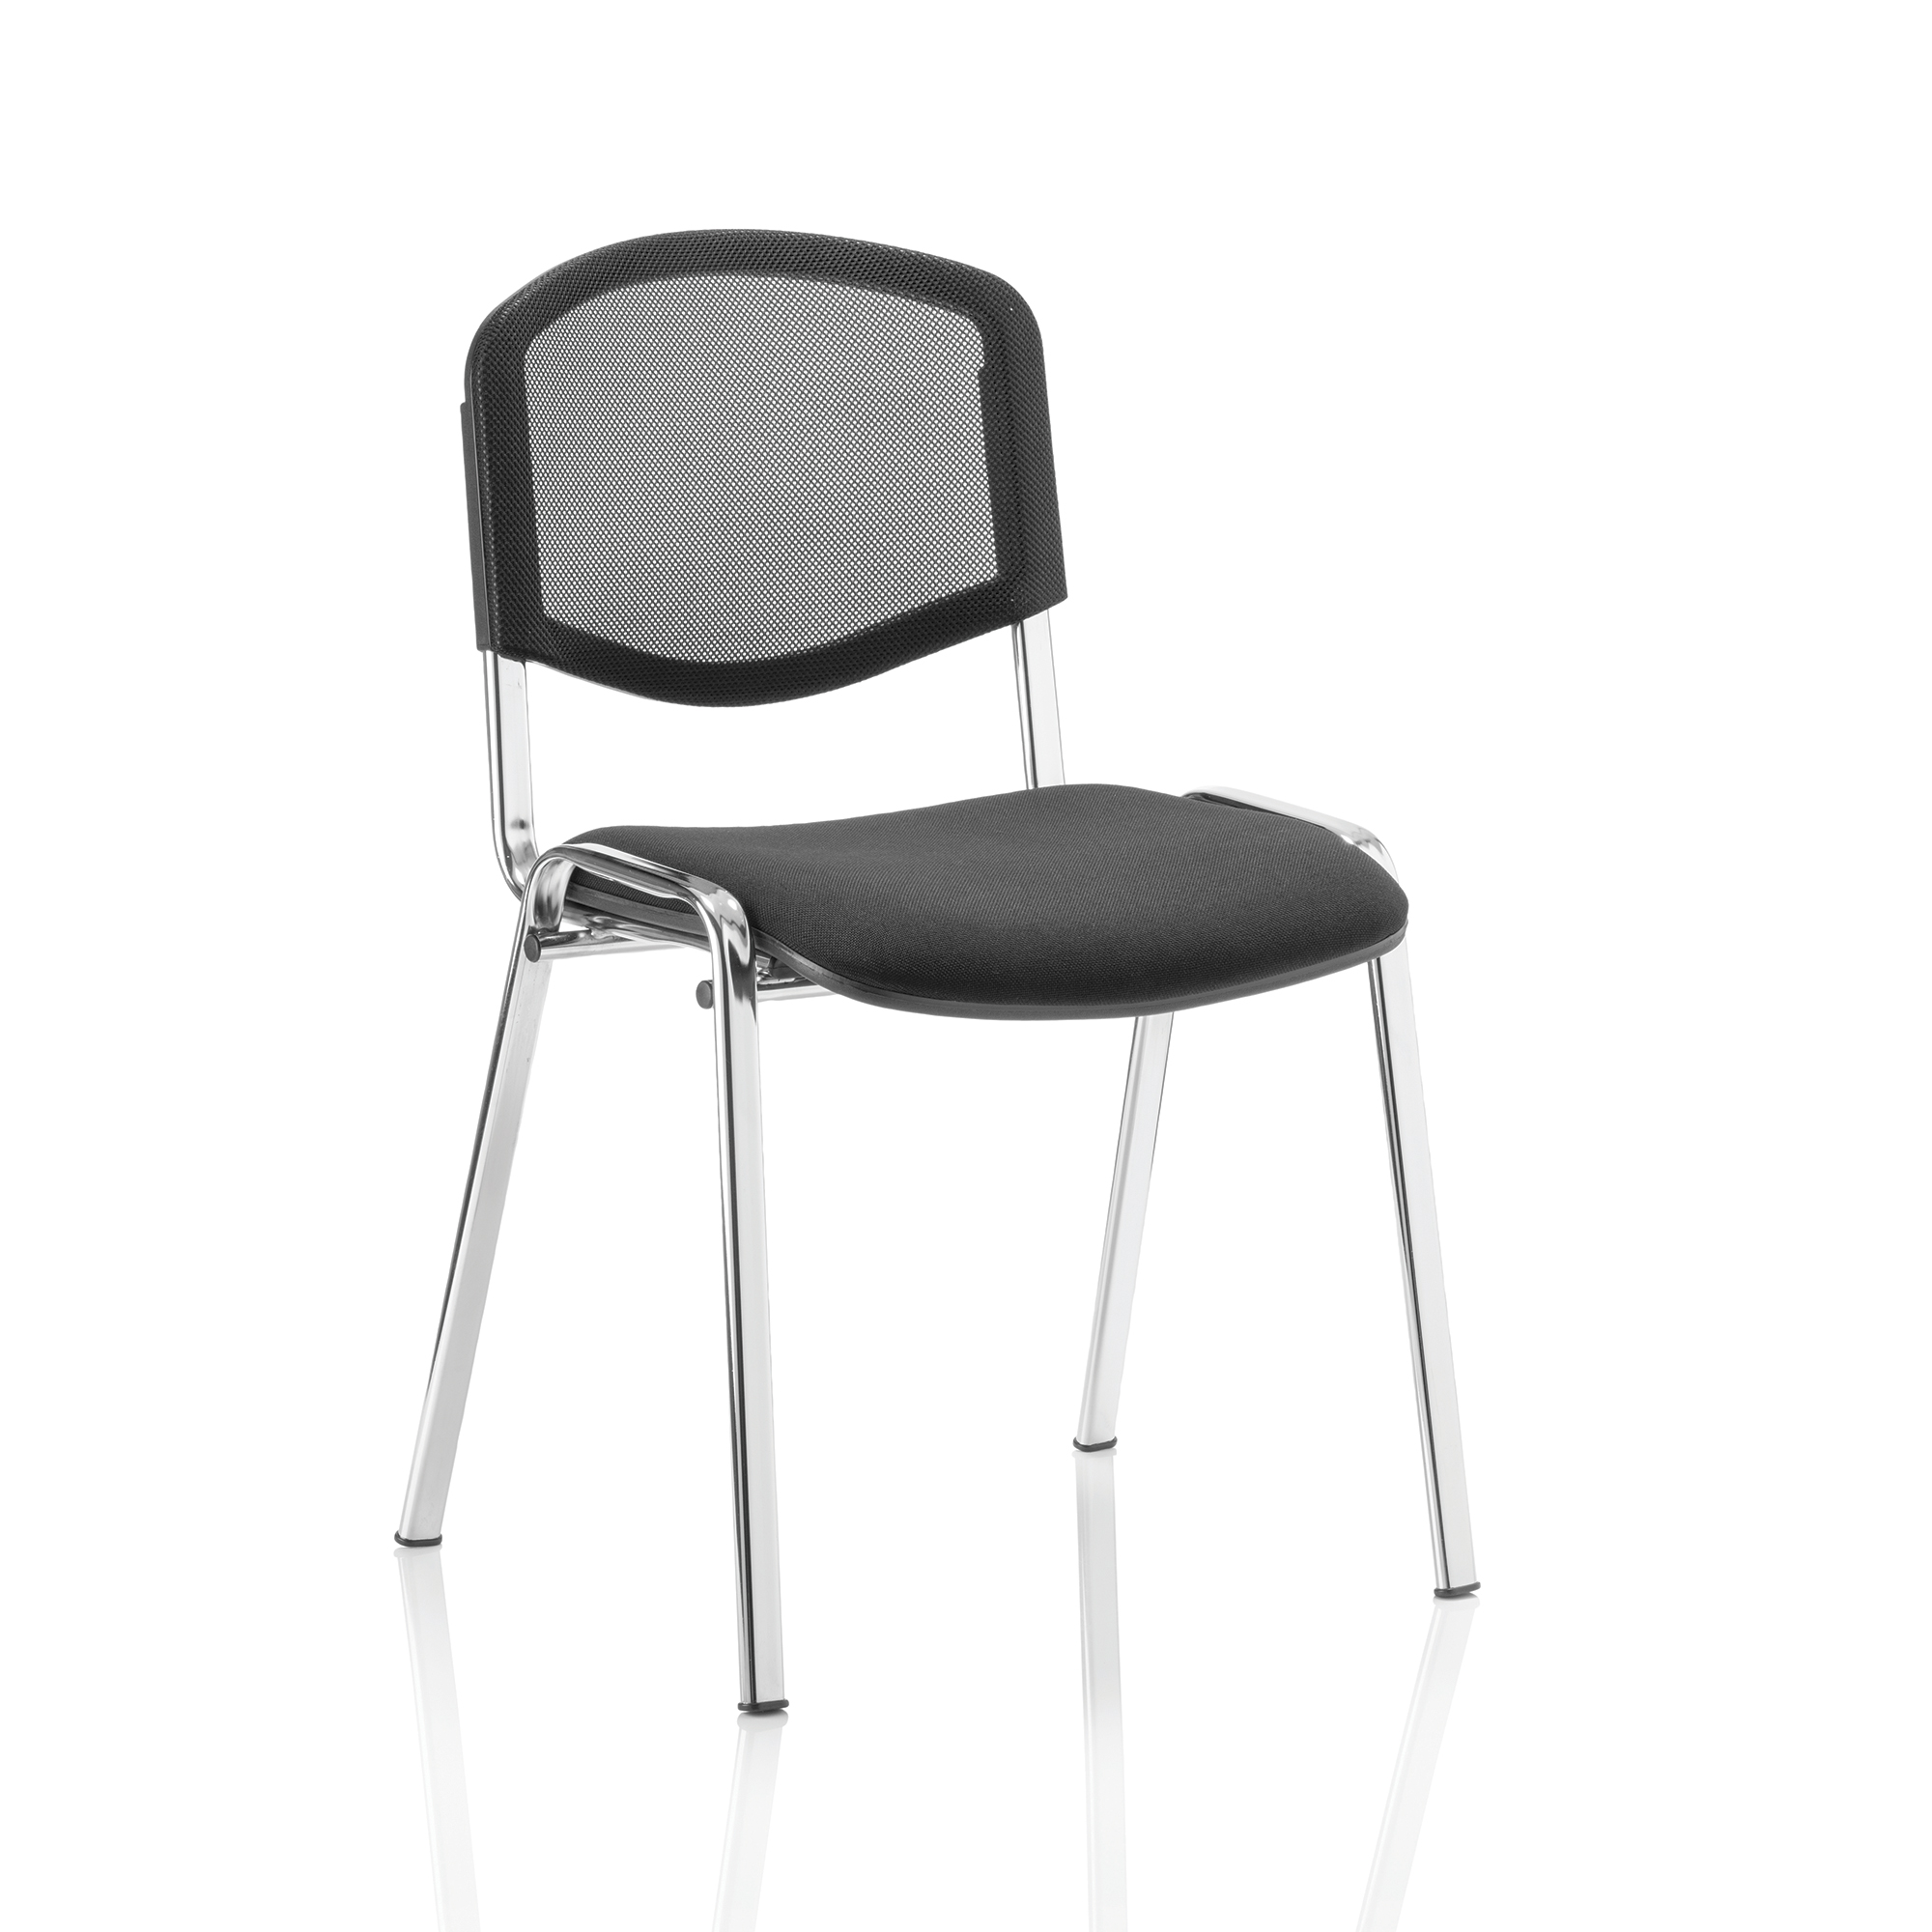 Auditorium or stadium or special use seating Trexus ISO Stacking Chair Without Arms Black Mesh Chrome Frame Ref BR000073